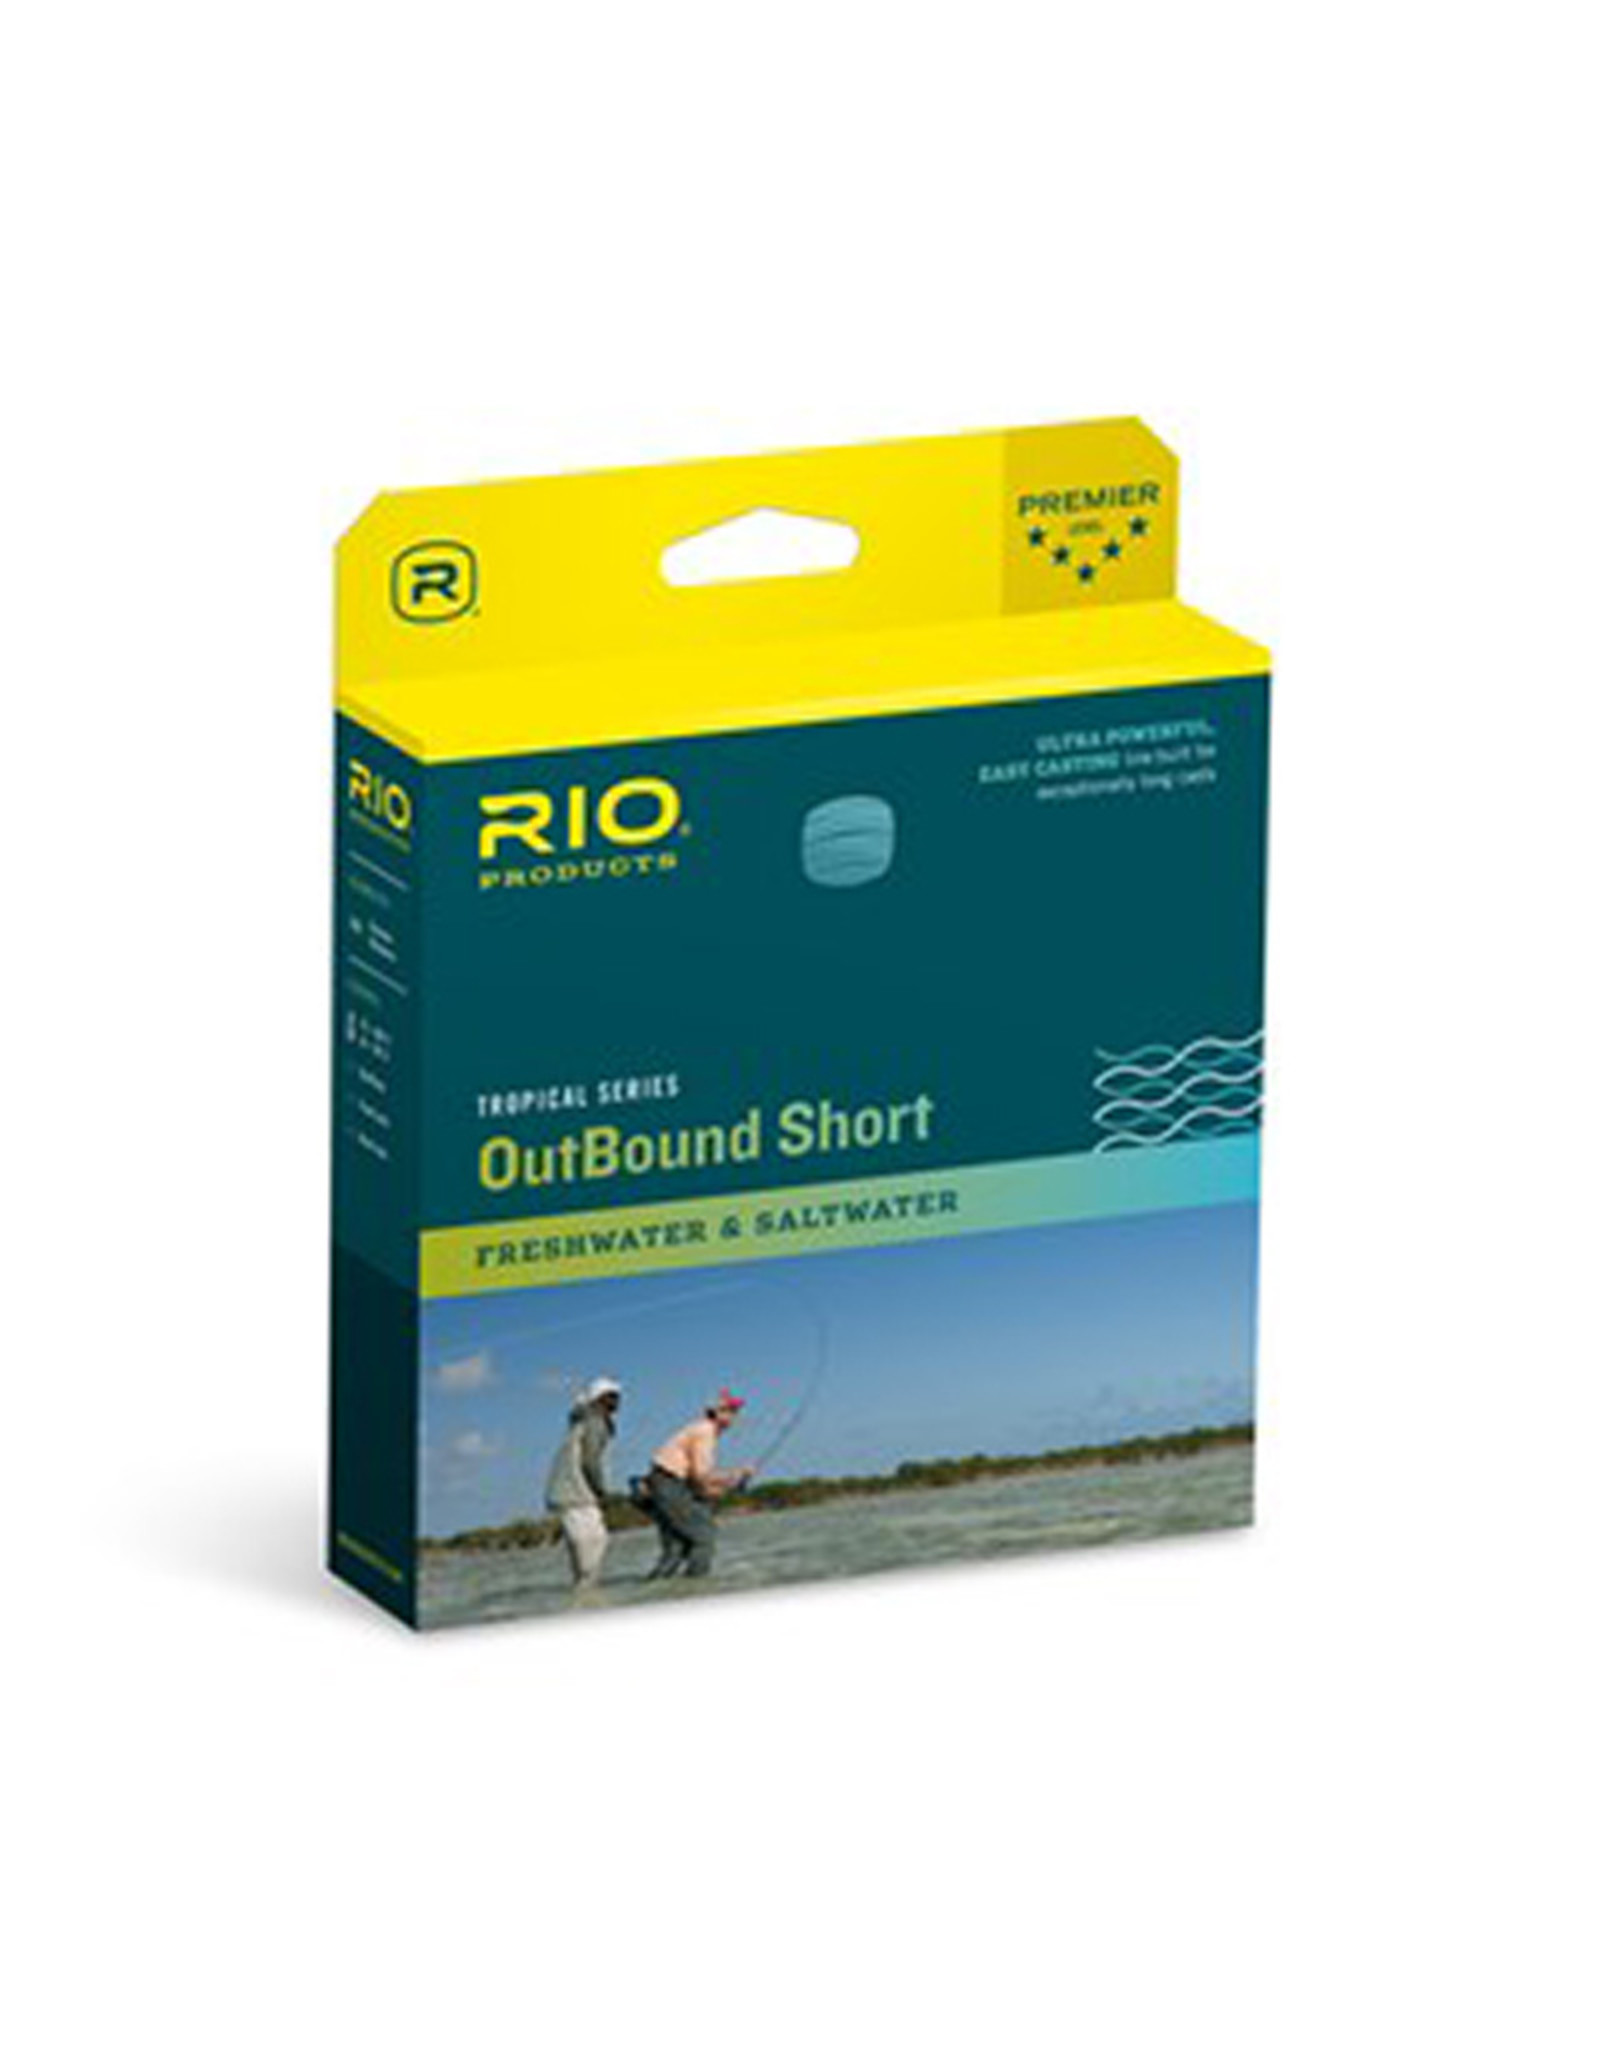 RIO Products Tropical OutBound Short F/I (30ft Intermediate Head)